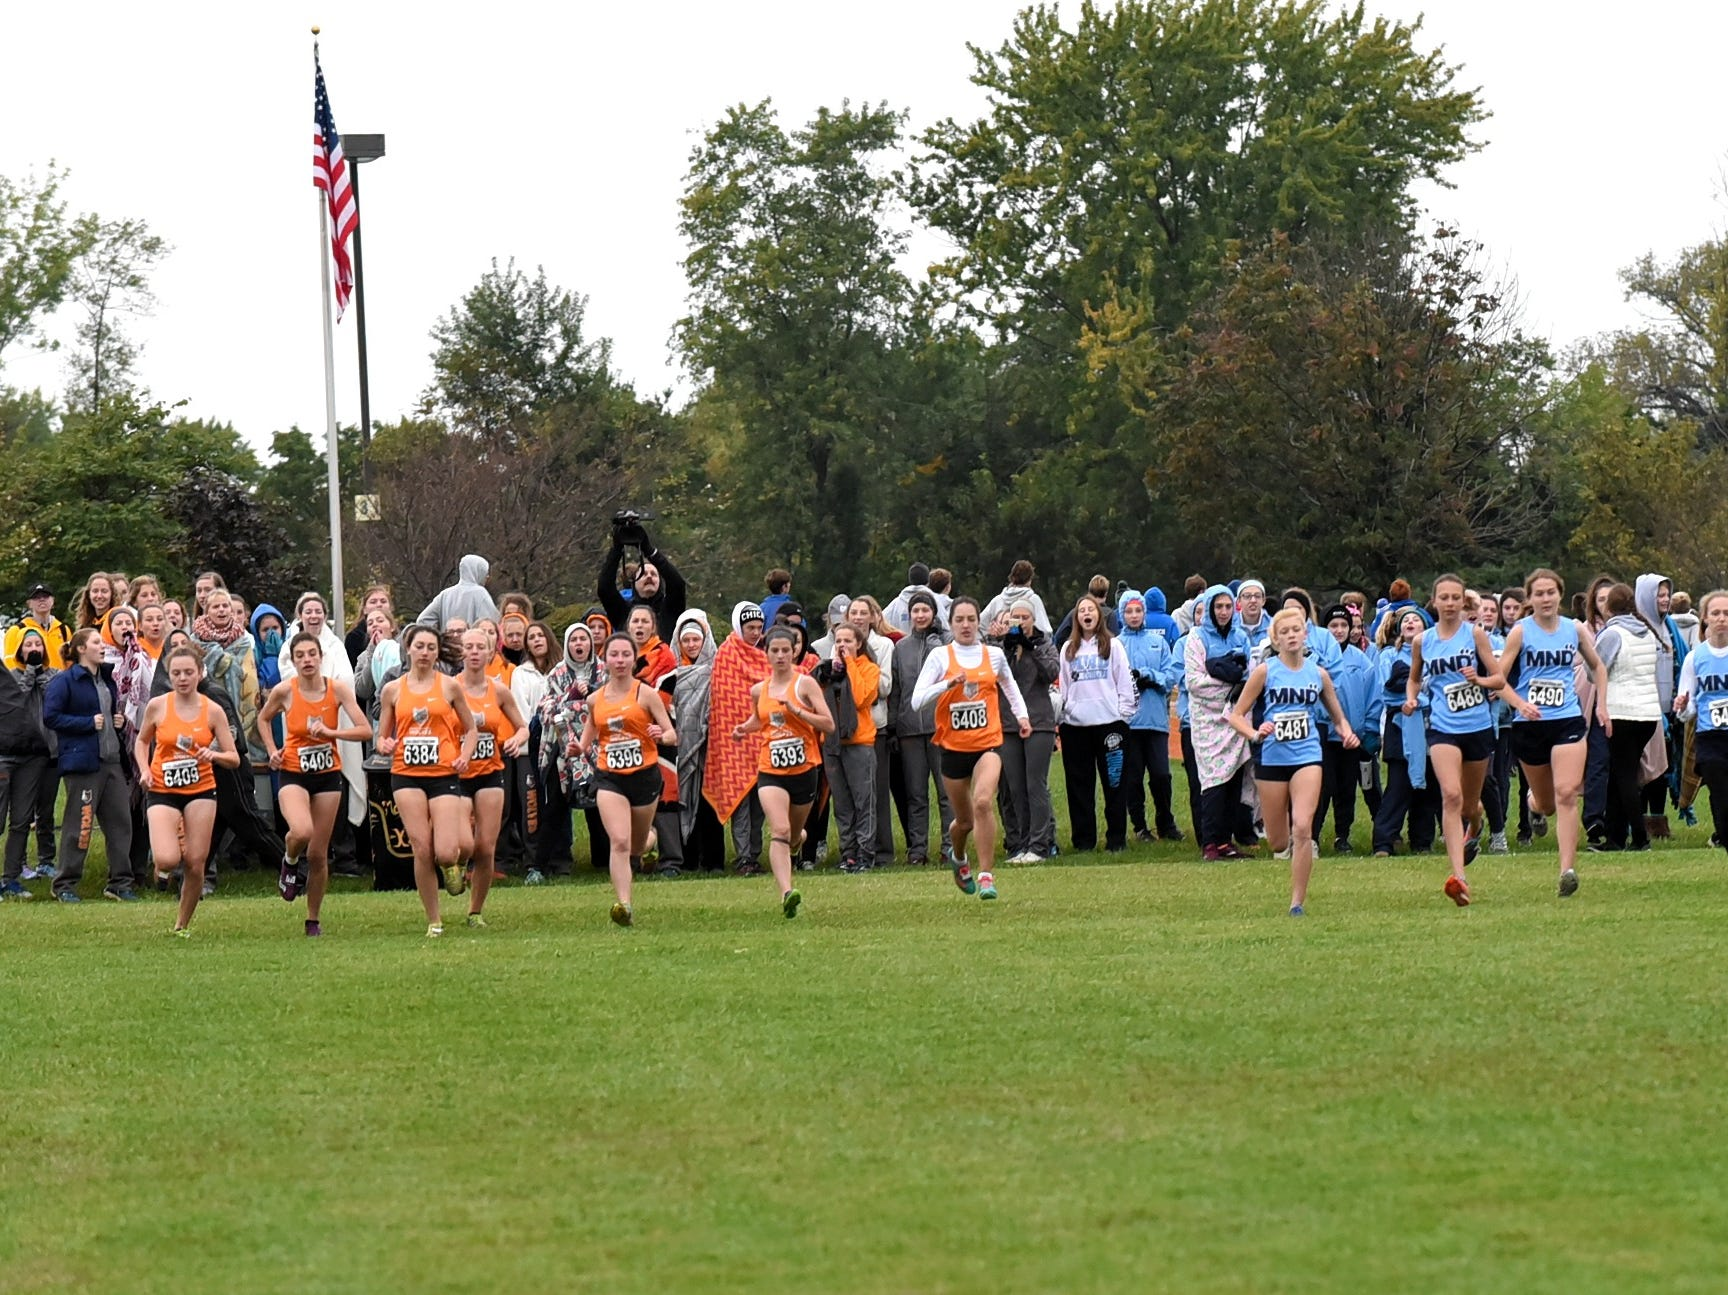 The ladies of the GGCL hit the trail at the 2018 GCL/GGCL Cross Country Championships, October 13, 2018.